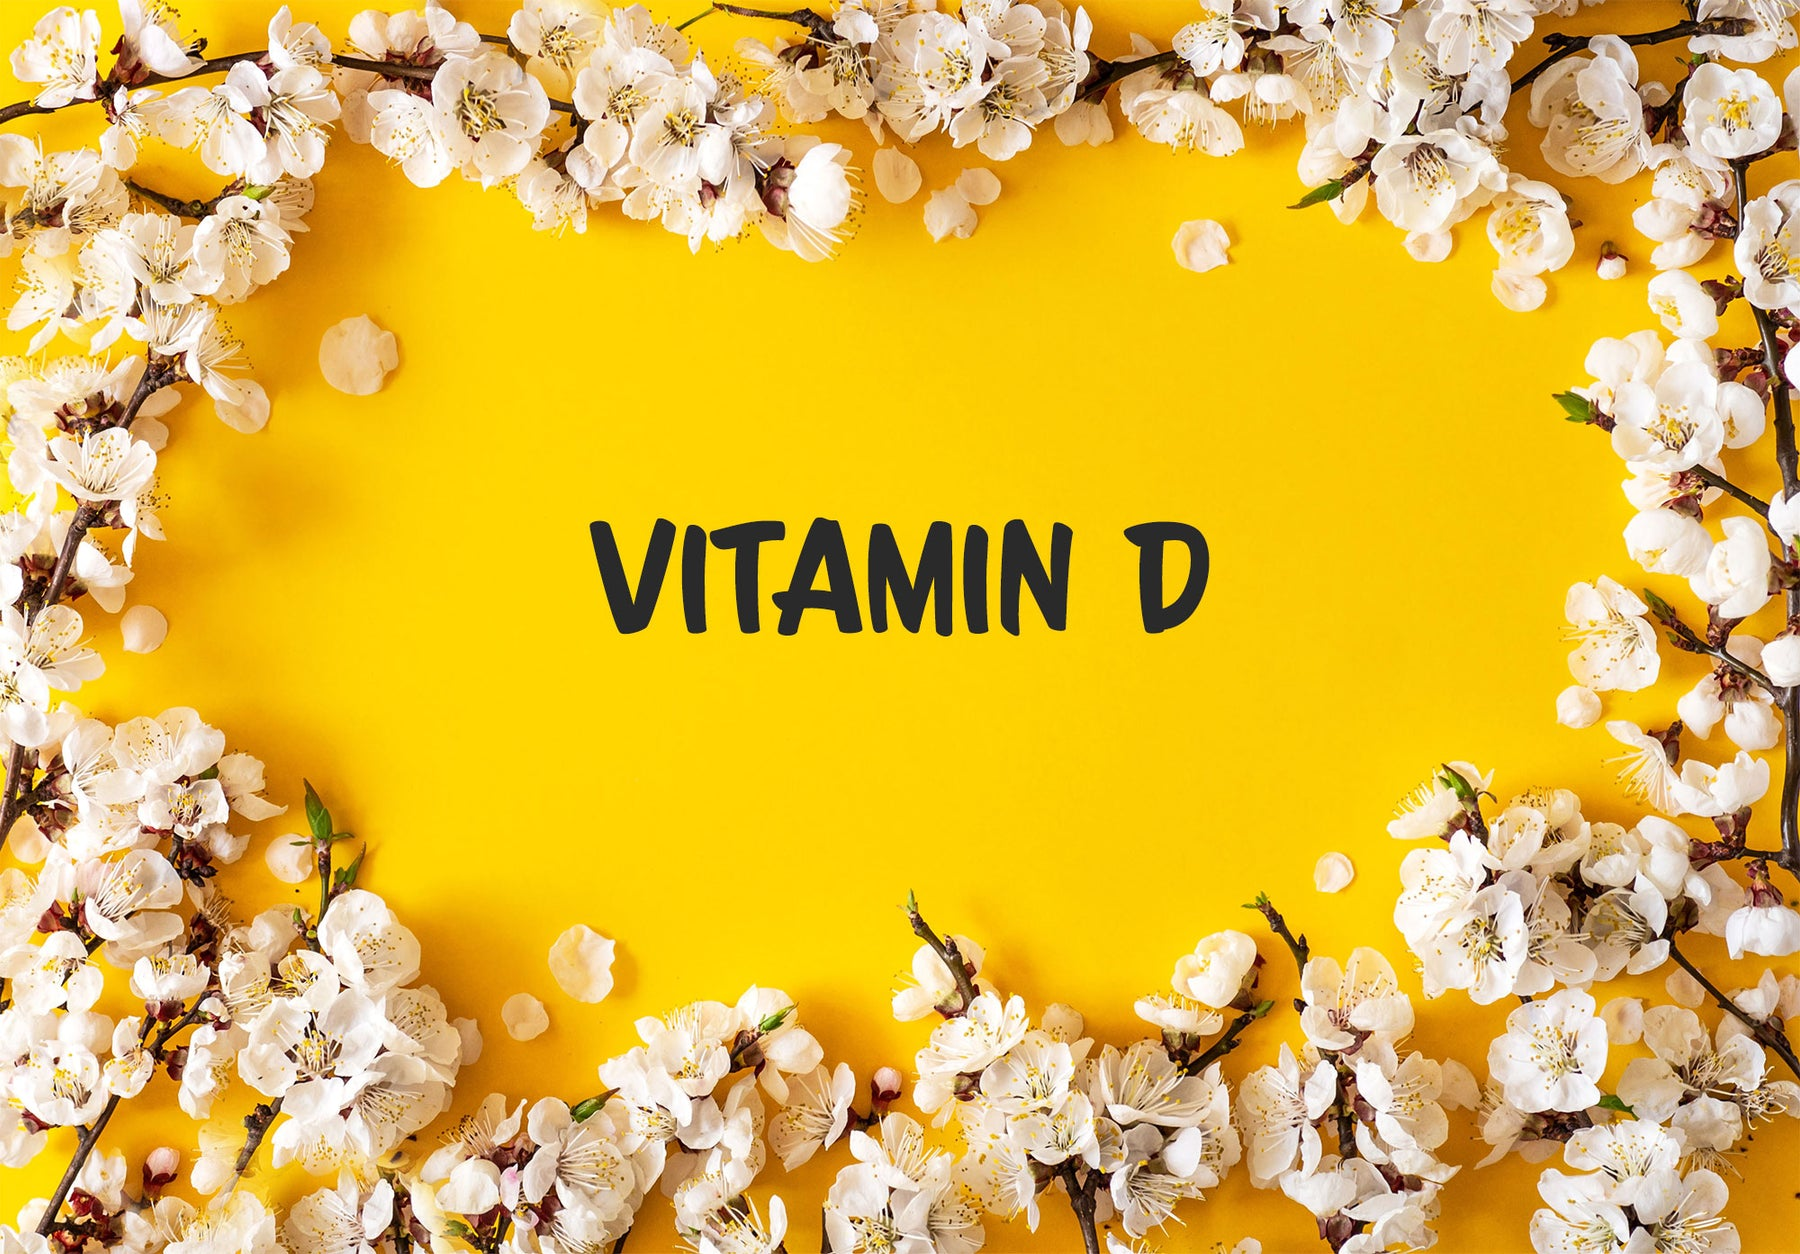 Did you know that Vitamin D isn't actually a vitamin?